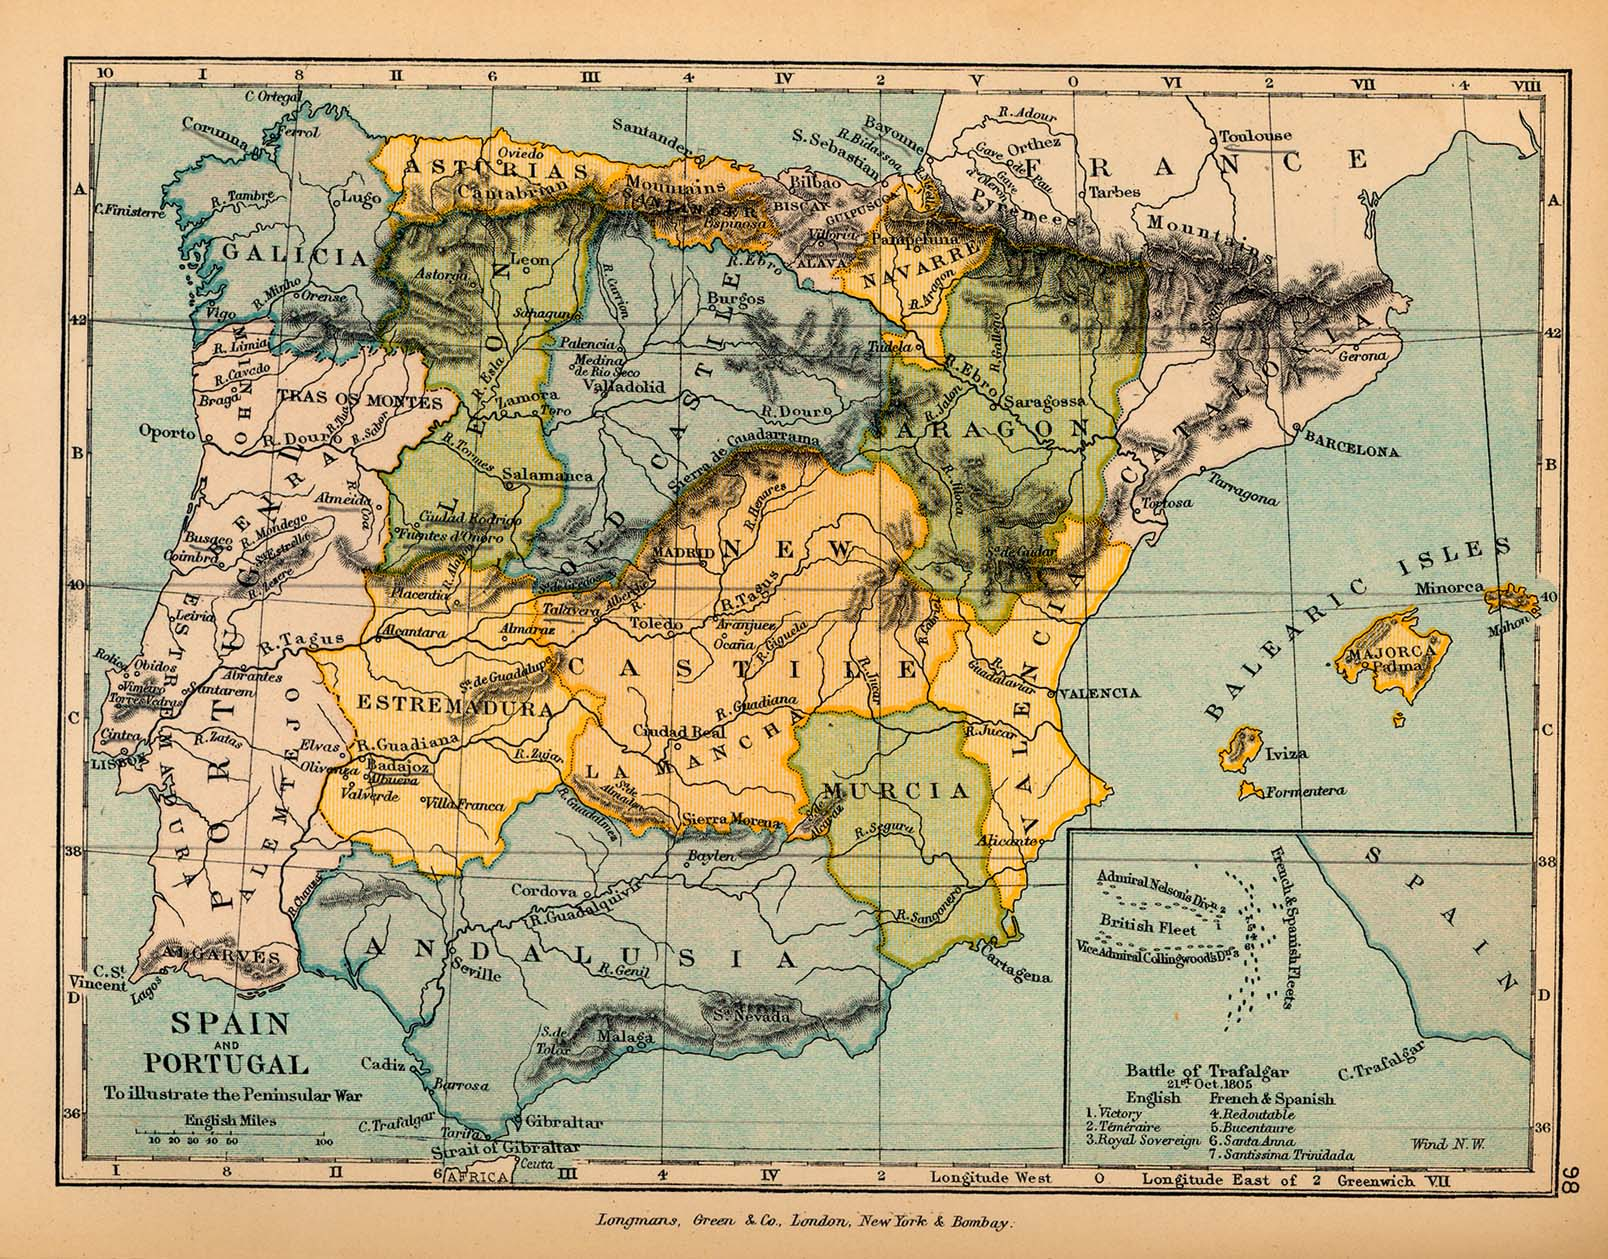 Map of Spain and Portugal, to illustrate the Peninsular War